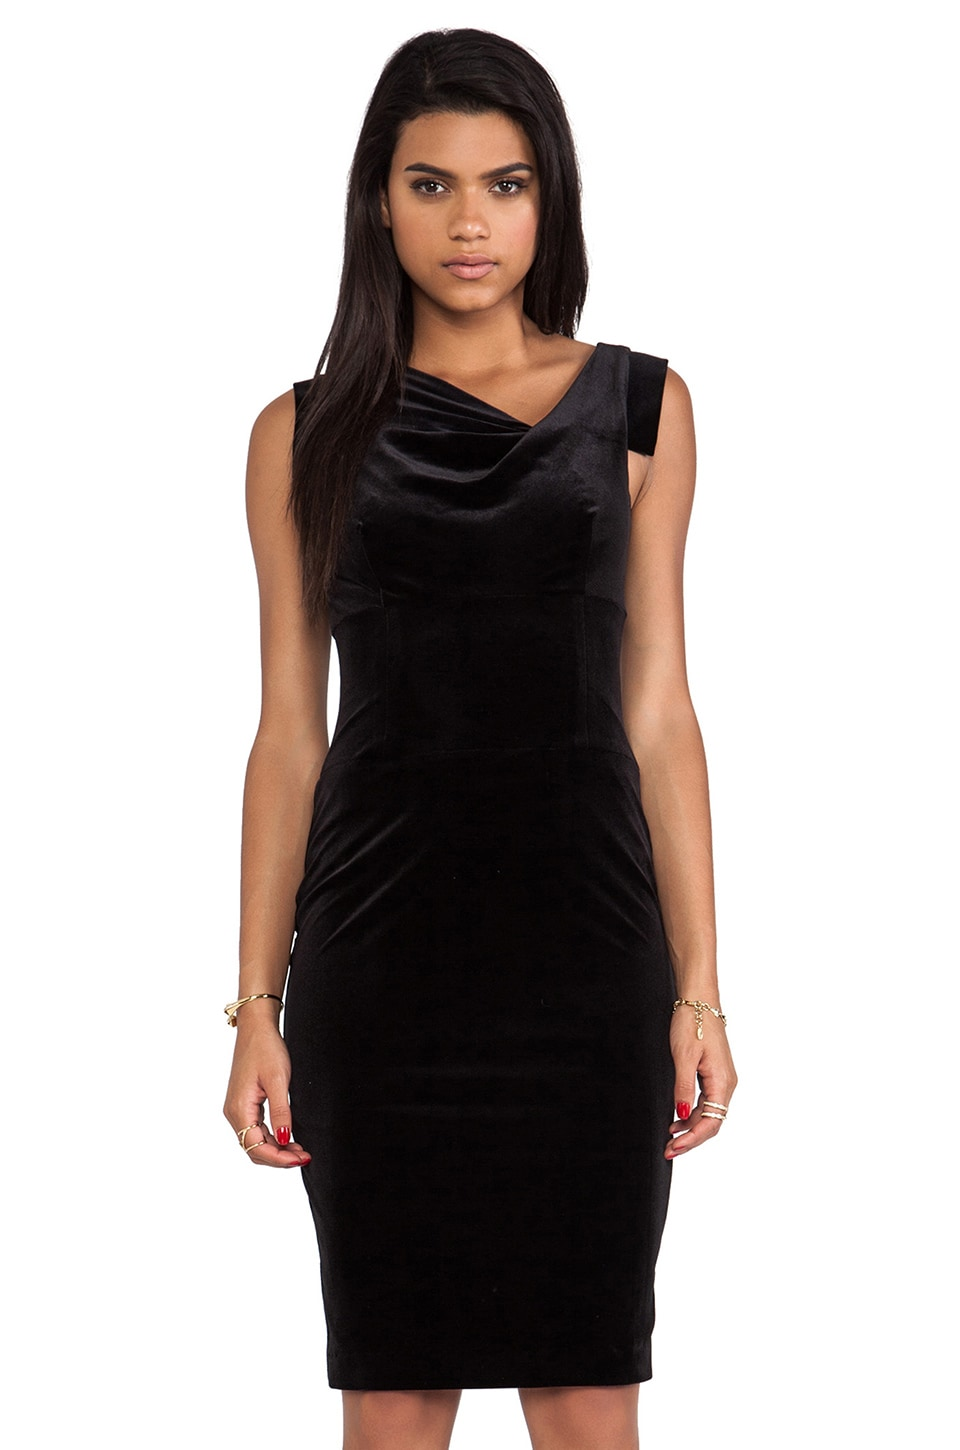 Black Halo Jackie O Dress in Black Velvet